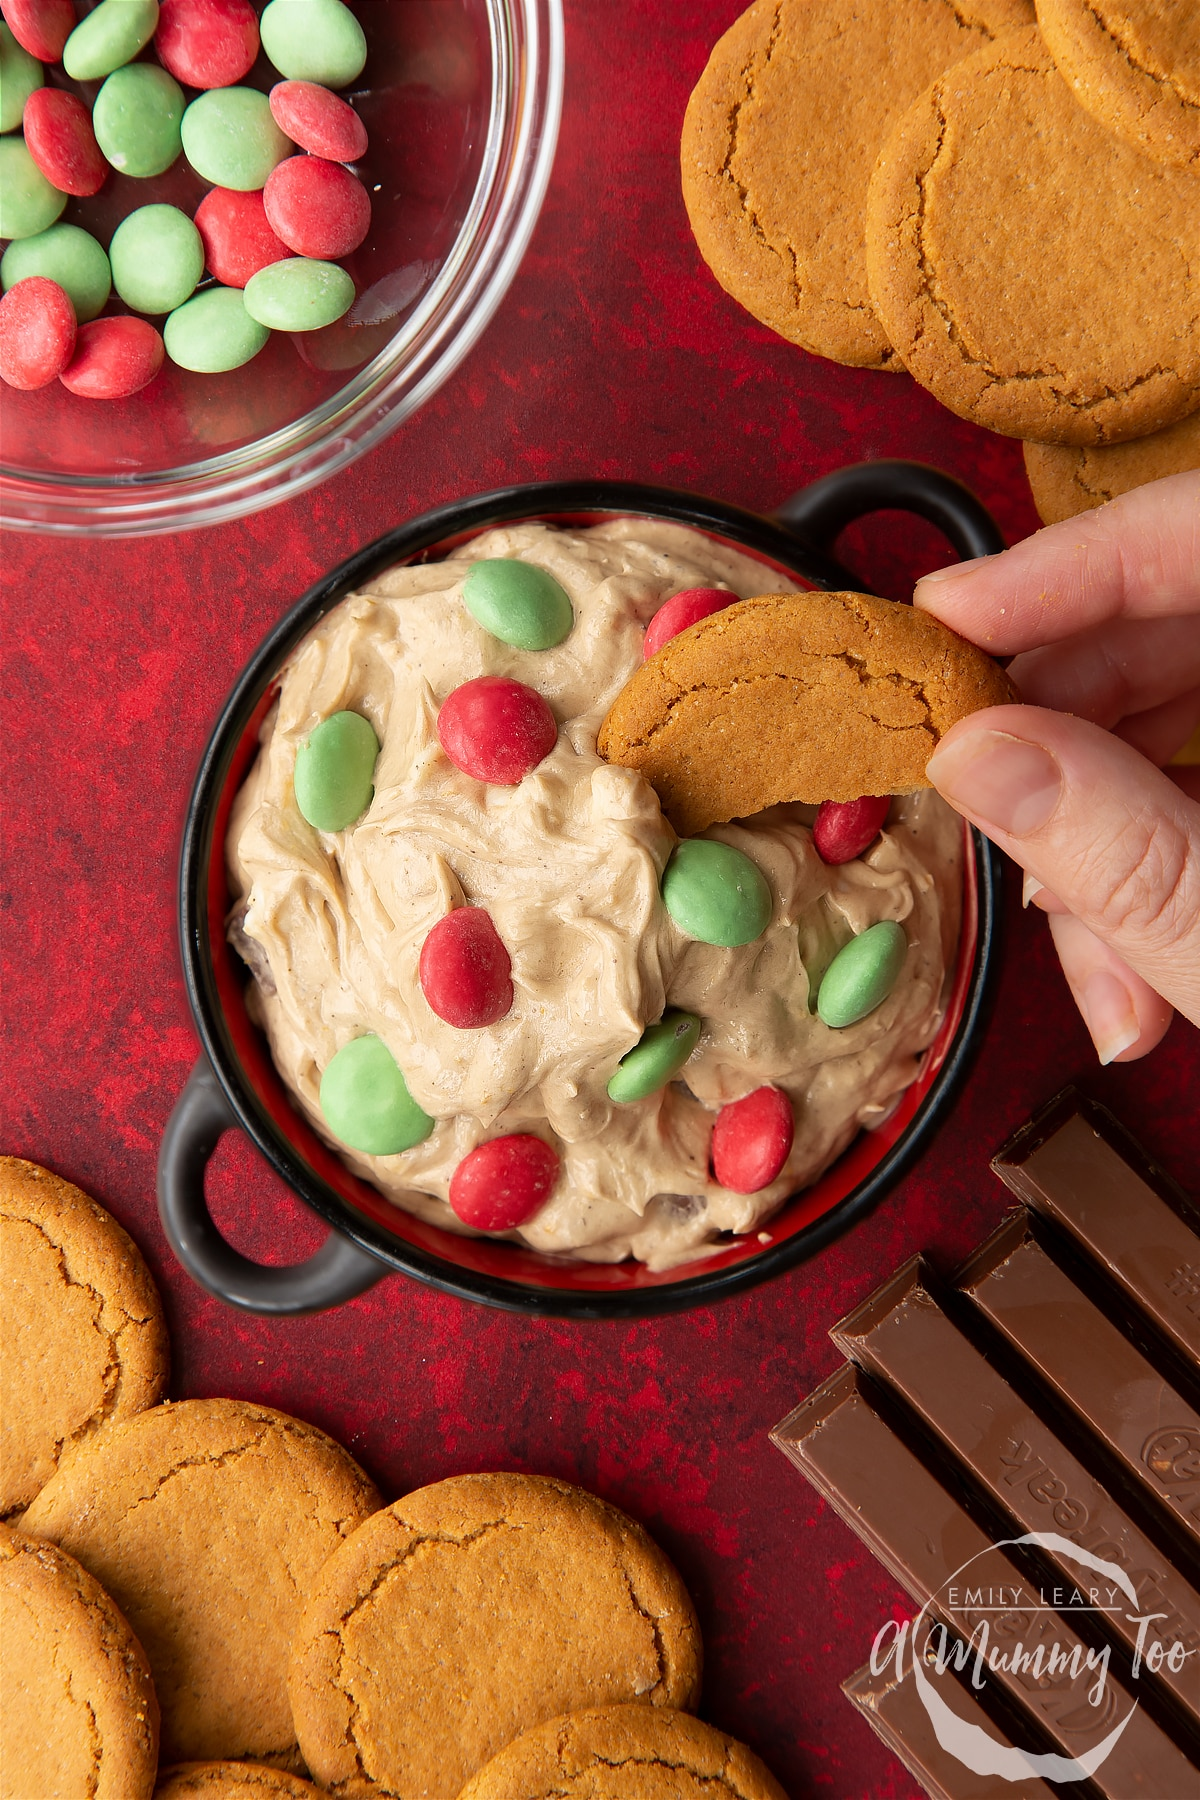 Christmas cookie dip in a black pot. A hand dips a piece of gingernut cookie into the dip. Shown from above.